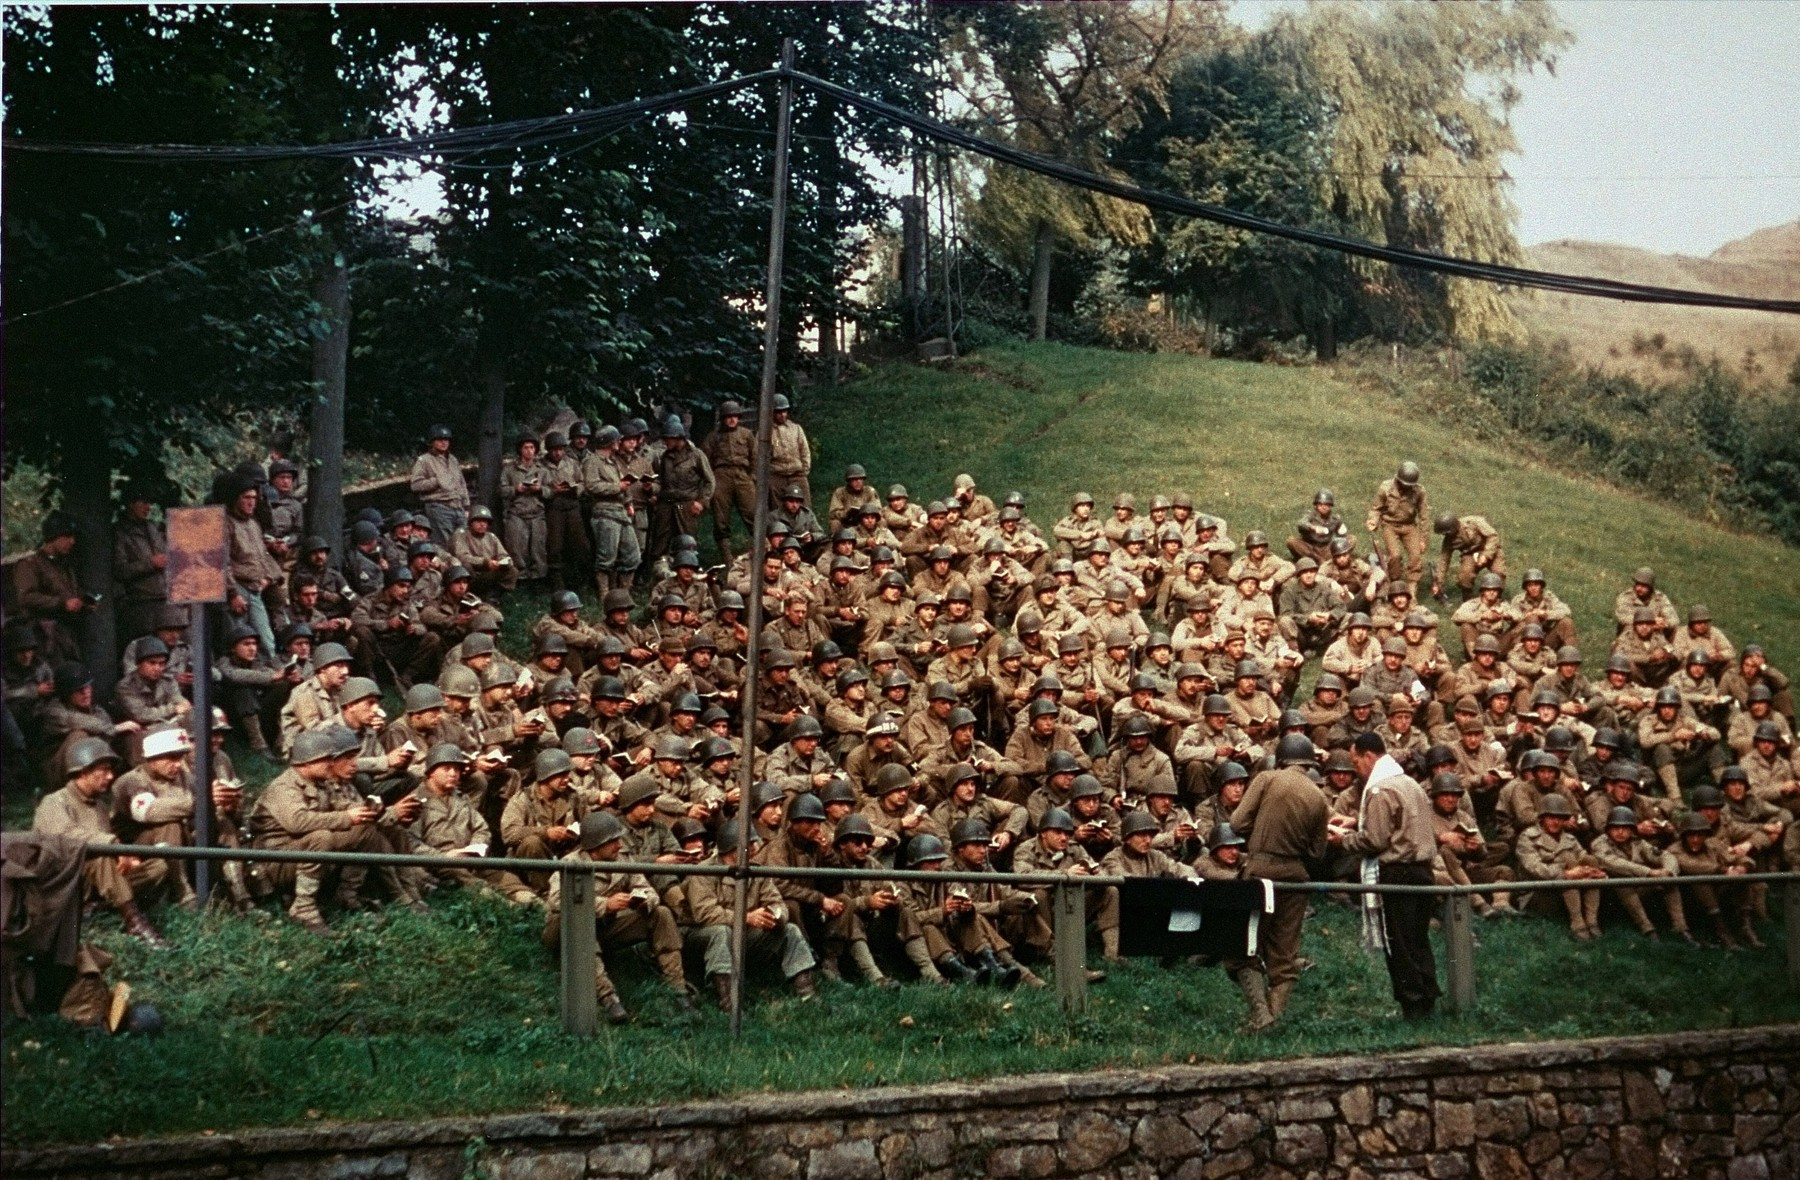 Jewish soldiers in the American Army attend High Holiday services on a hillside near the newly established Seventh Corps headquarters in Kornelimünster, near Aachen, Germany.  Among those pictured is Rabbi Sidney Leskowitz.